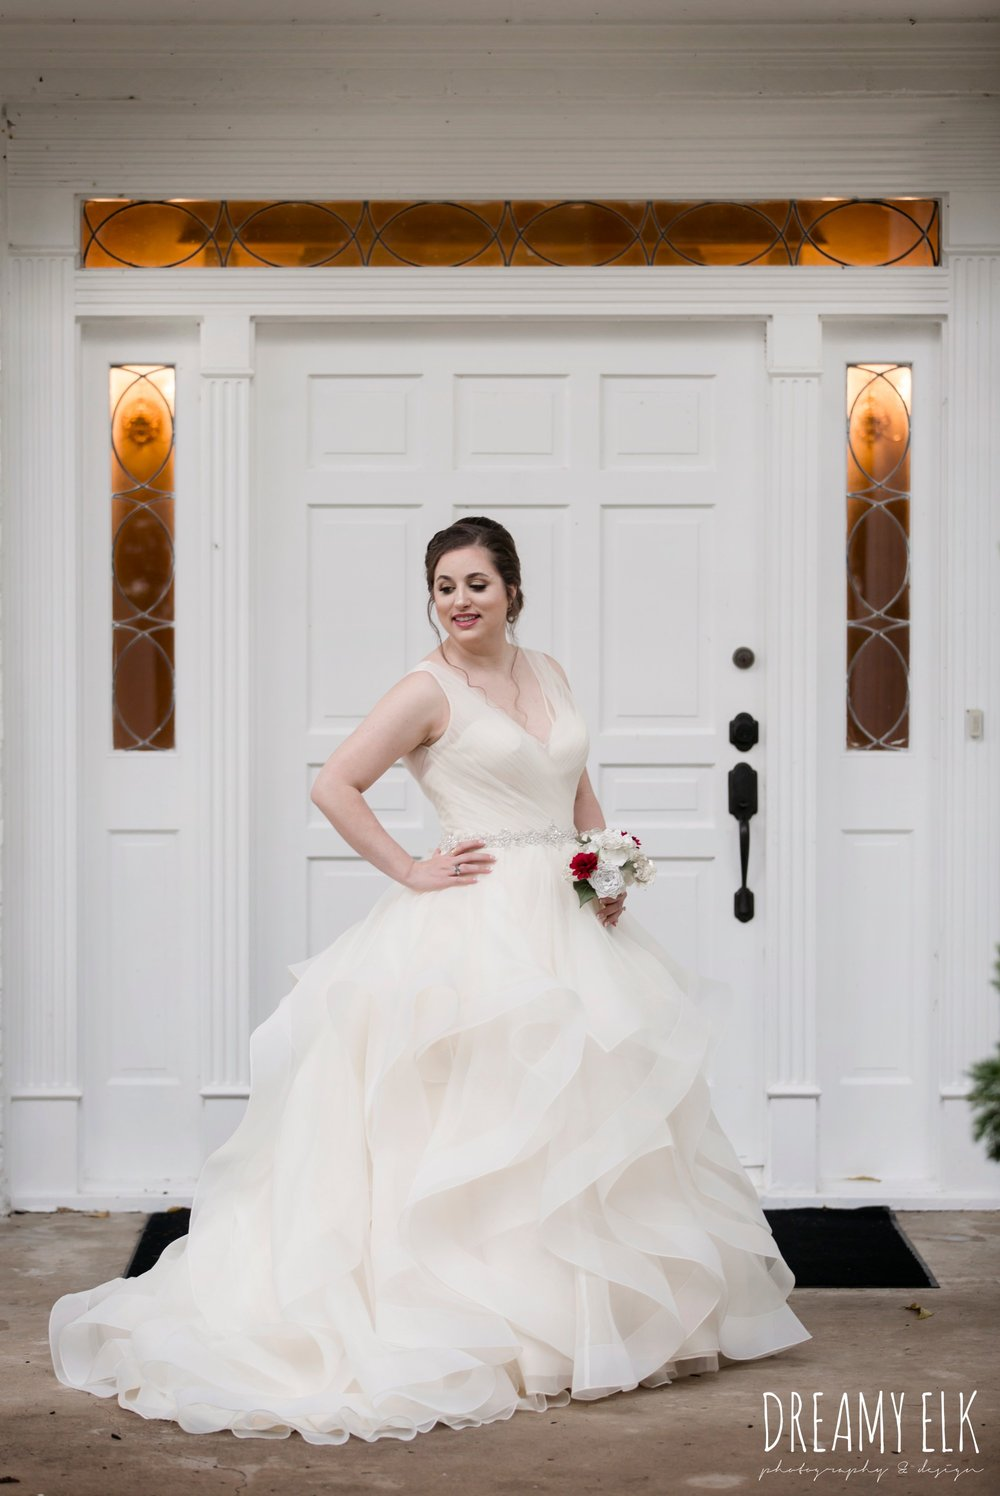 bride, eddy k ballgown wedding dress with ruffles, paper flower wedding bouquet, wedding hair updo no veil, fall wedding, gold and navy wedding photo, ashelynn manor, austin texas wedding photographer, dreamy elk photography and design, emily ross